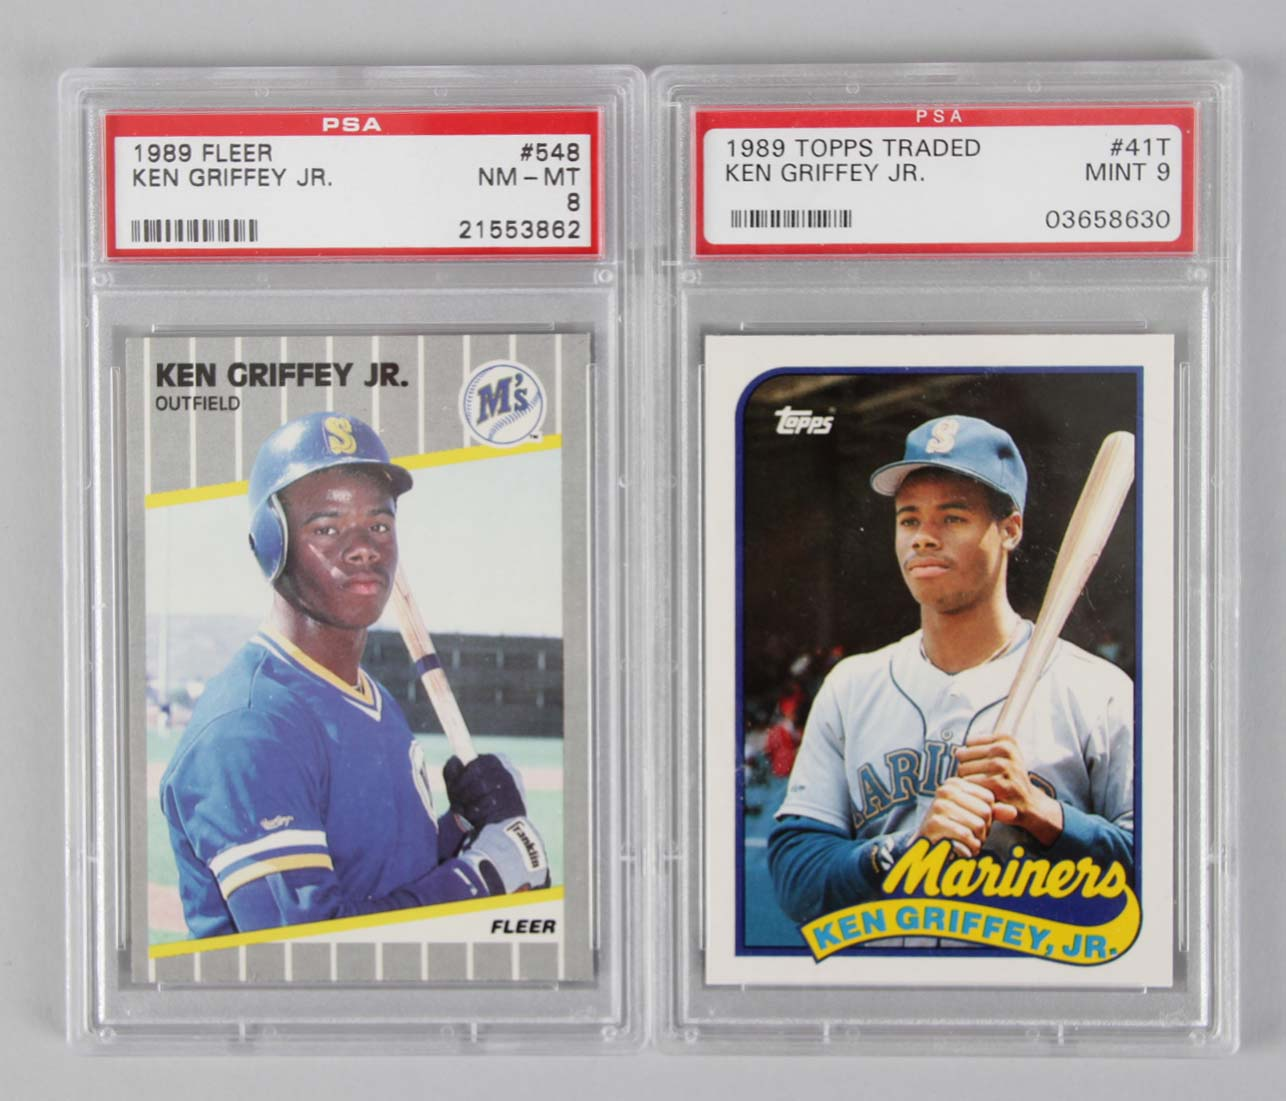 5a6f1a81a6 1989 Seattle Mariners – Ken Griffey, Jr. Rookie PSA Graded Card RC Lot –  Topps.